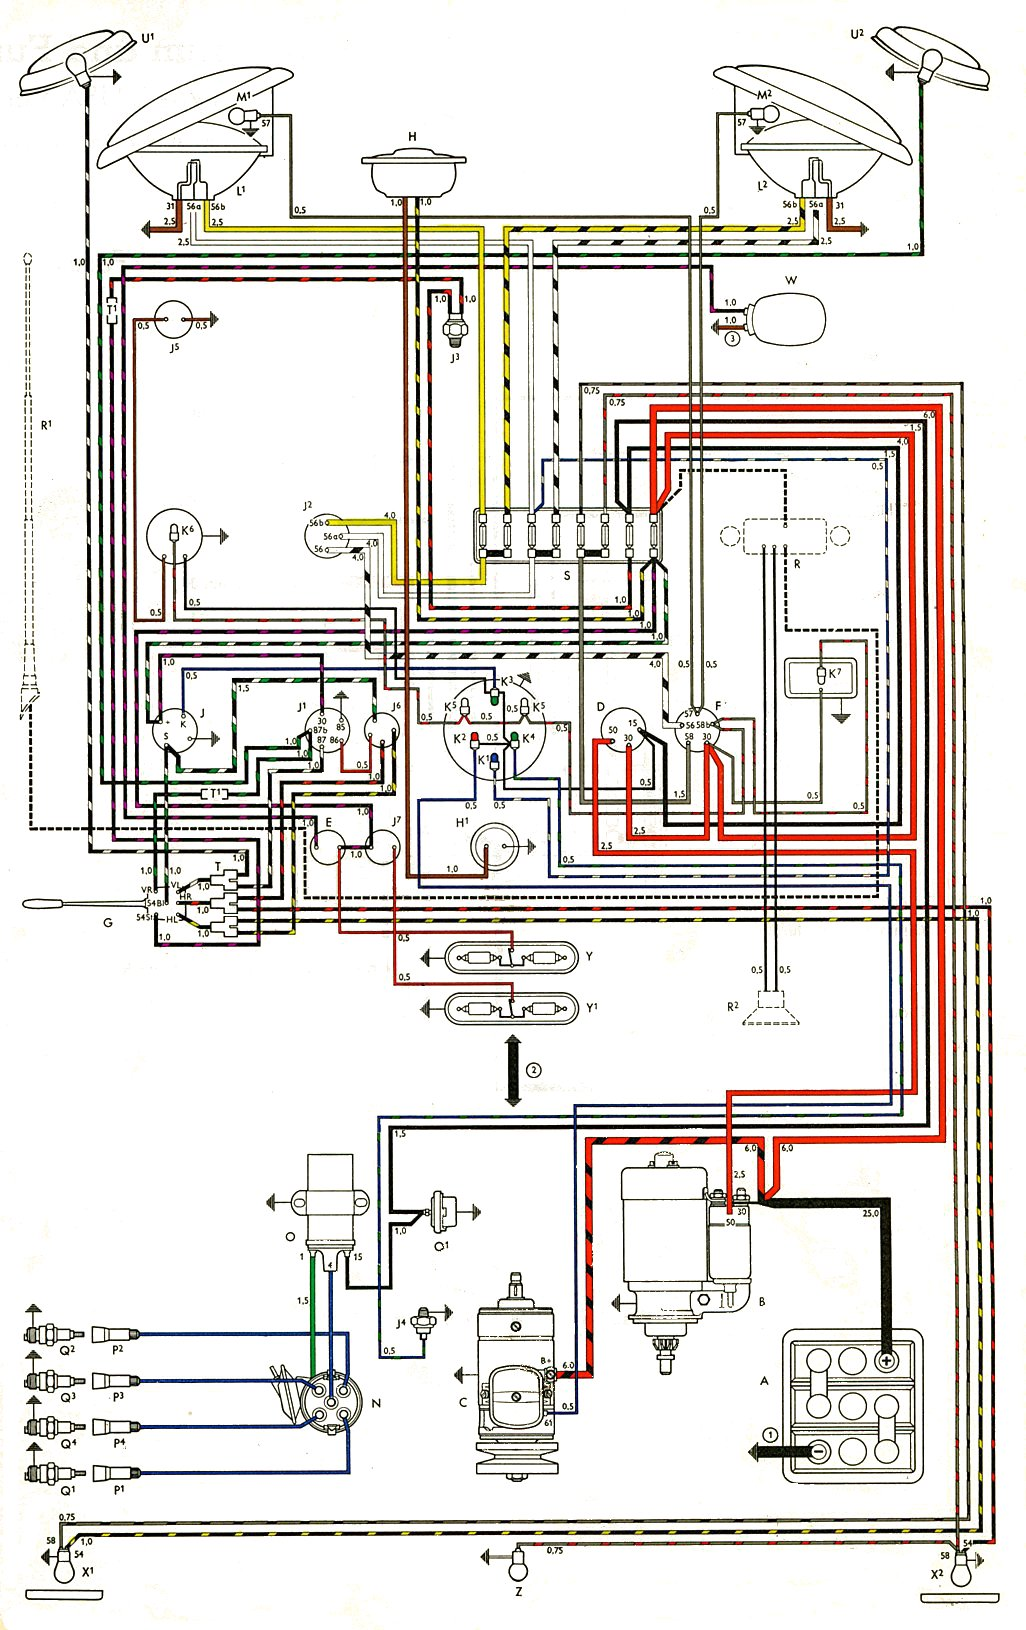 thesamba com type 2 wiring diagramsWiring Diagrams In Addition Vw Jetta 2 0 Engine Diagram In Addition Vw #14